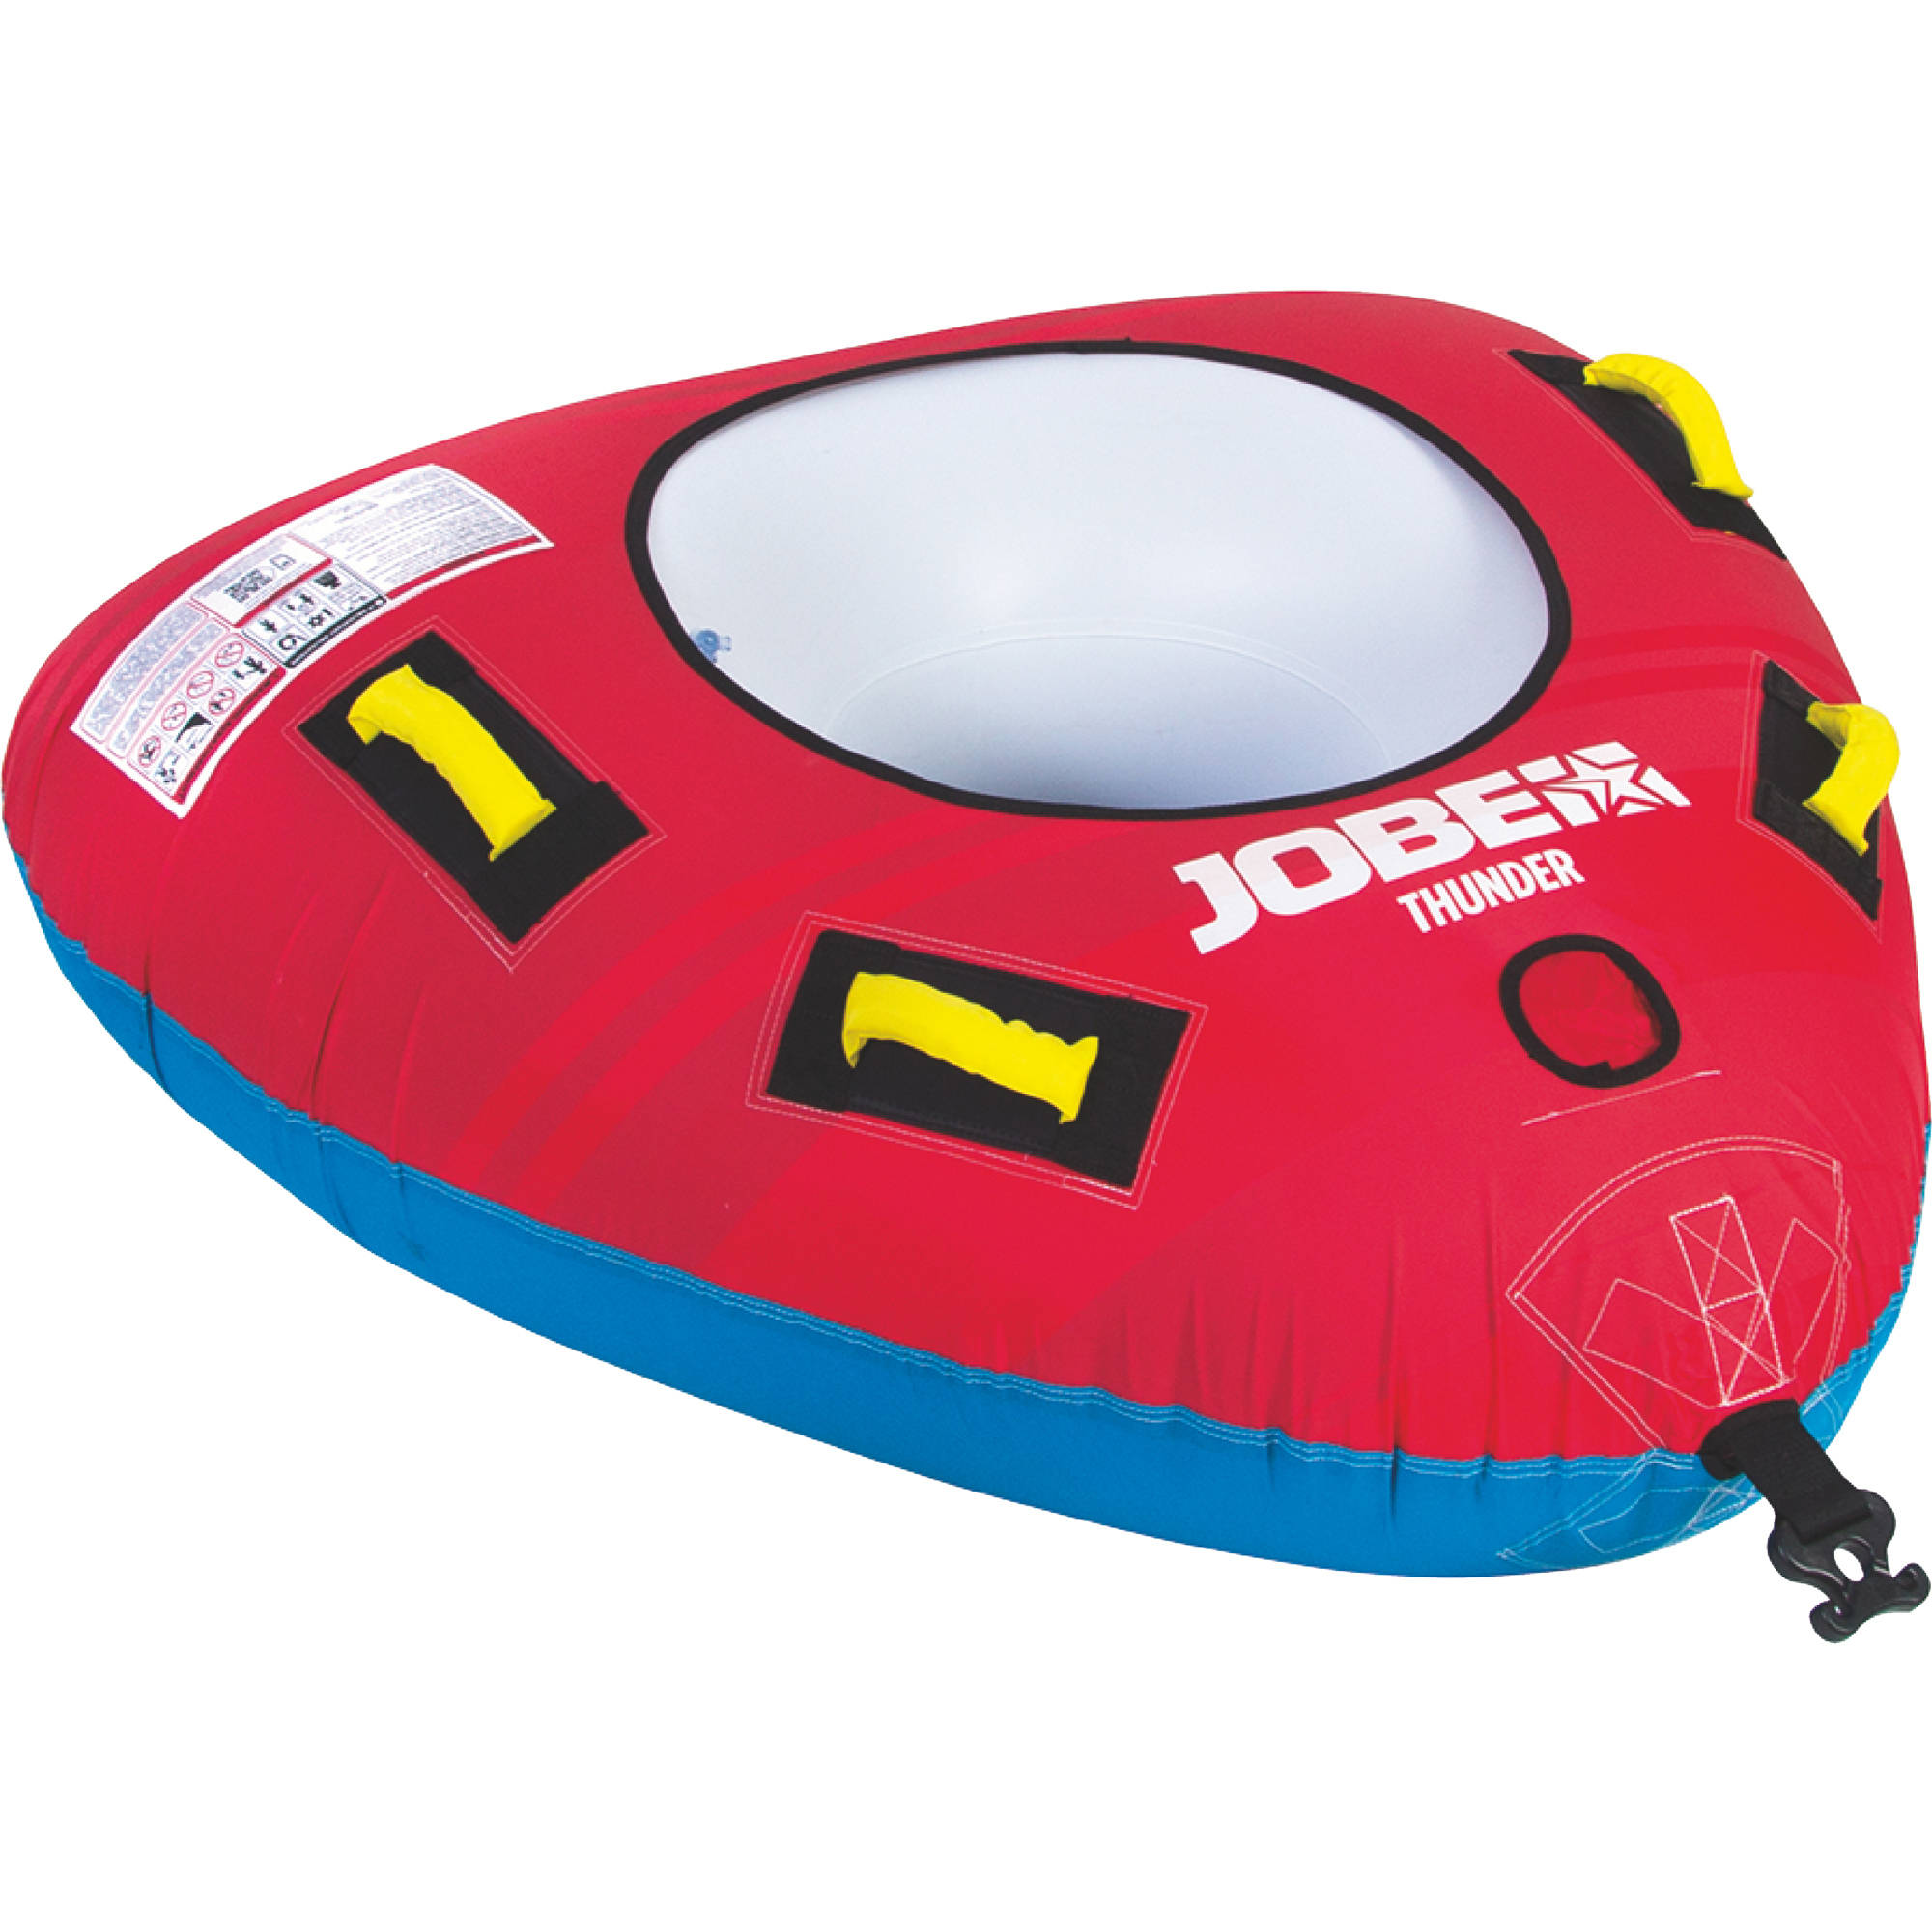 Jobe 230117004 Thunder 1 Person Open Top Triangle Inflatable Towable